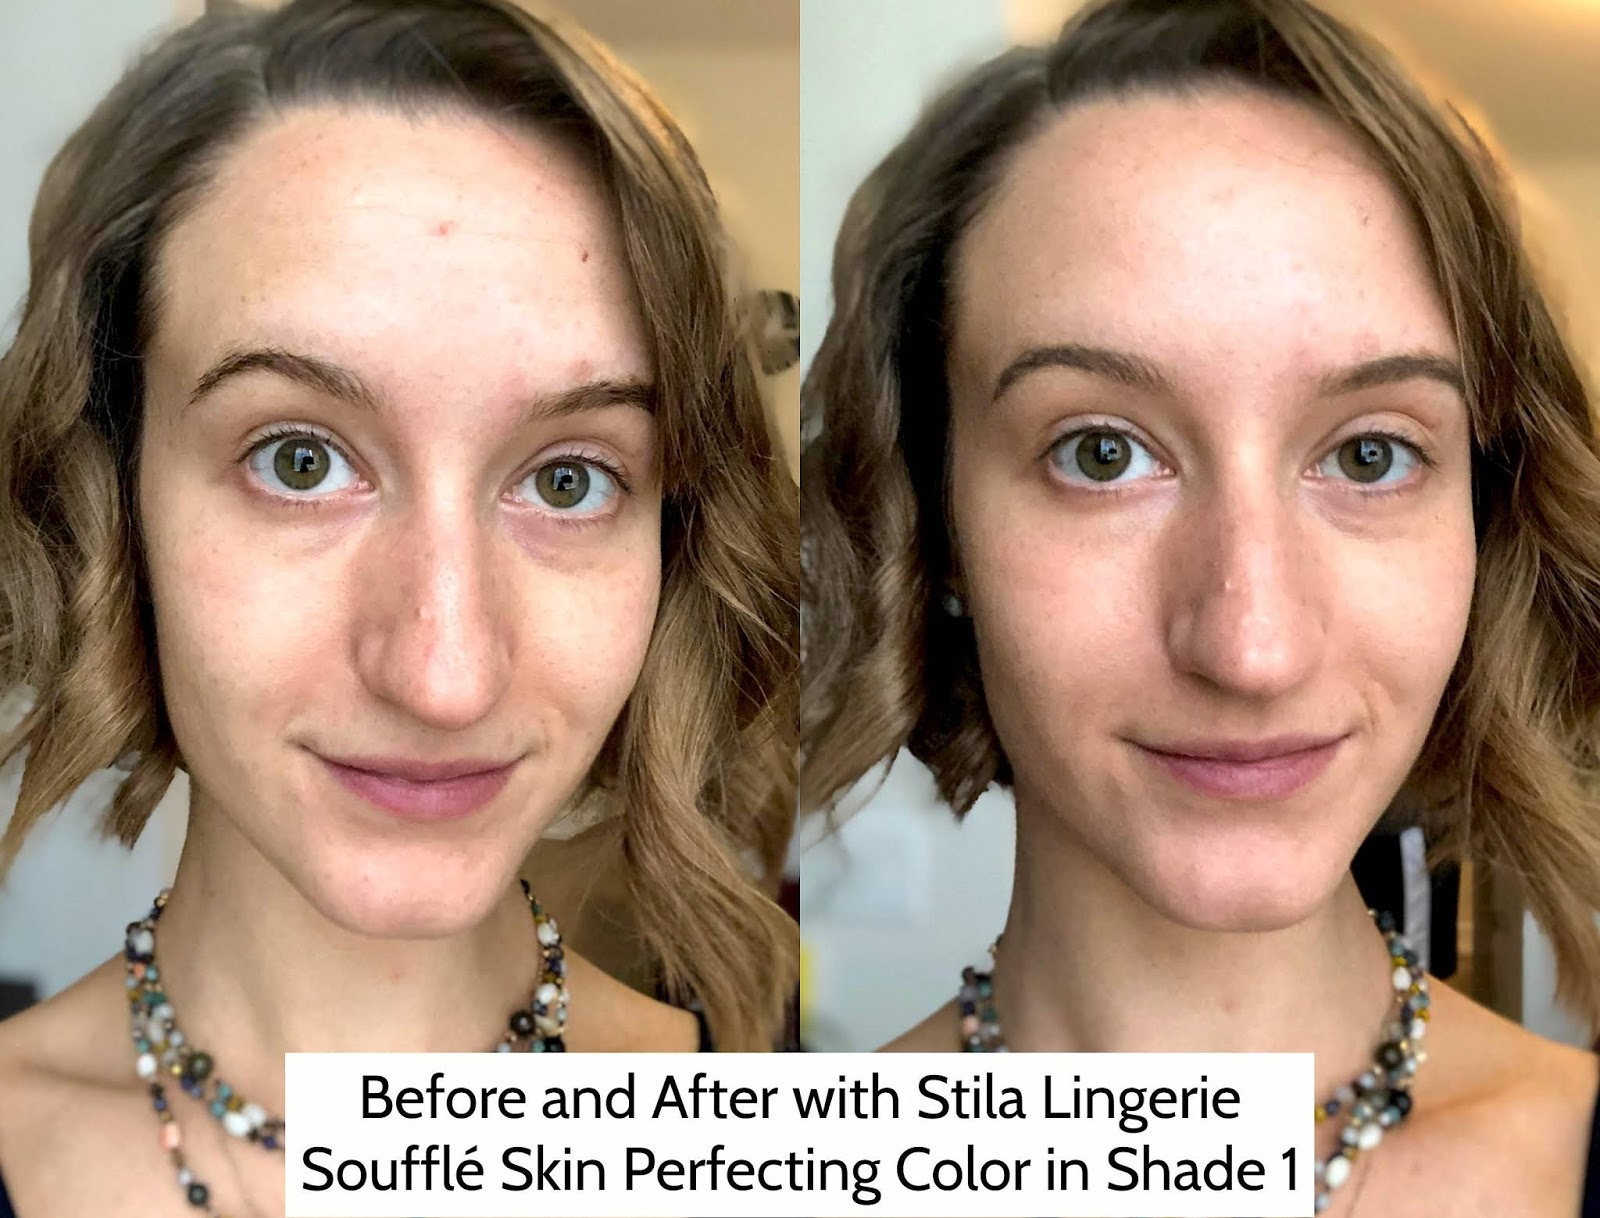 Stila Lingerie Soufflé Skin Perfecting Color Review